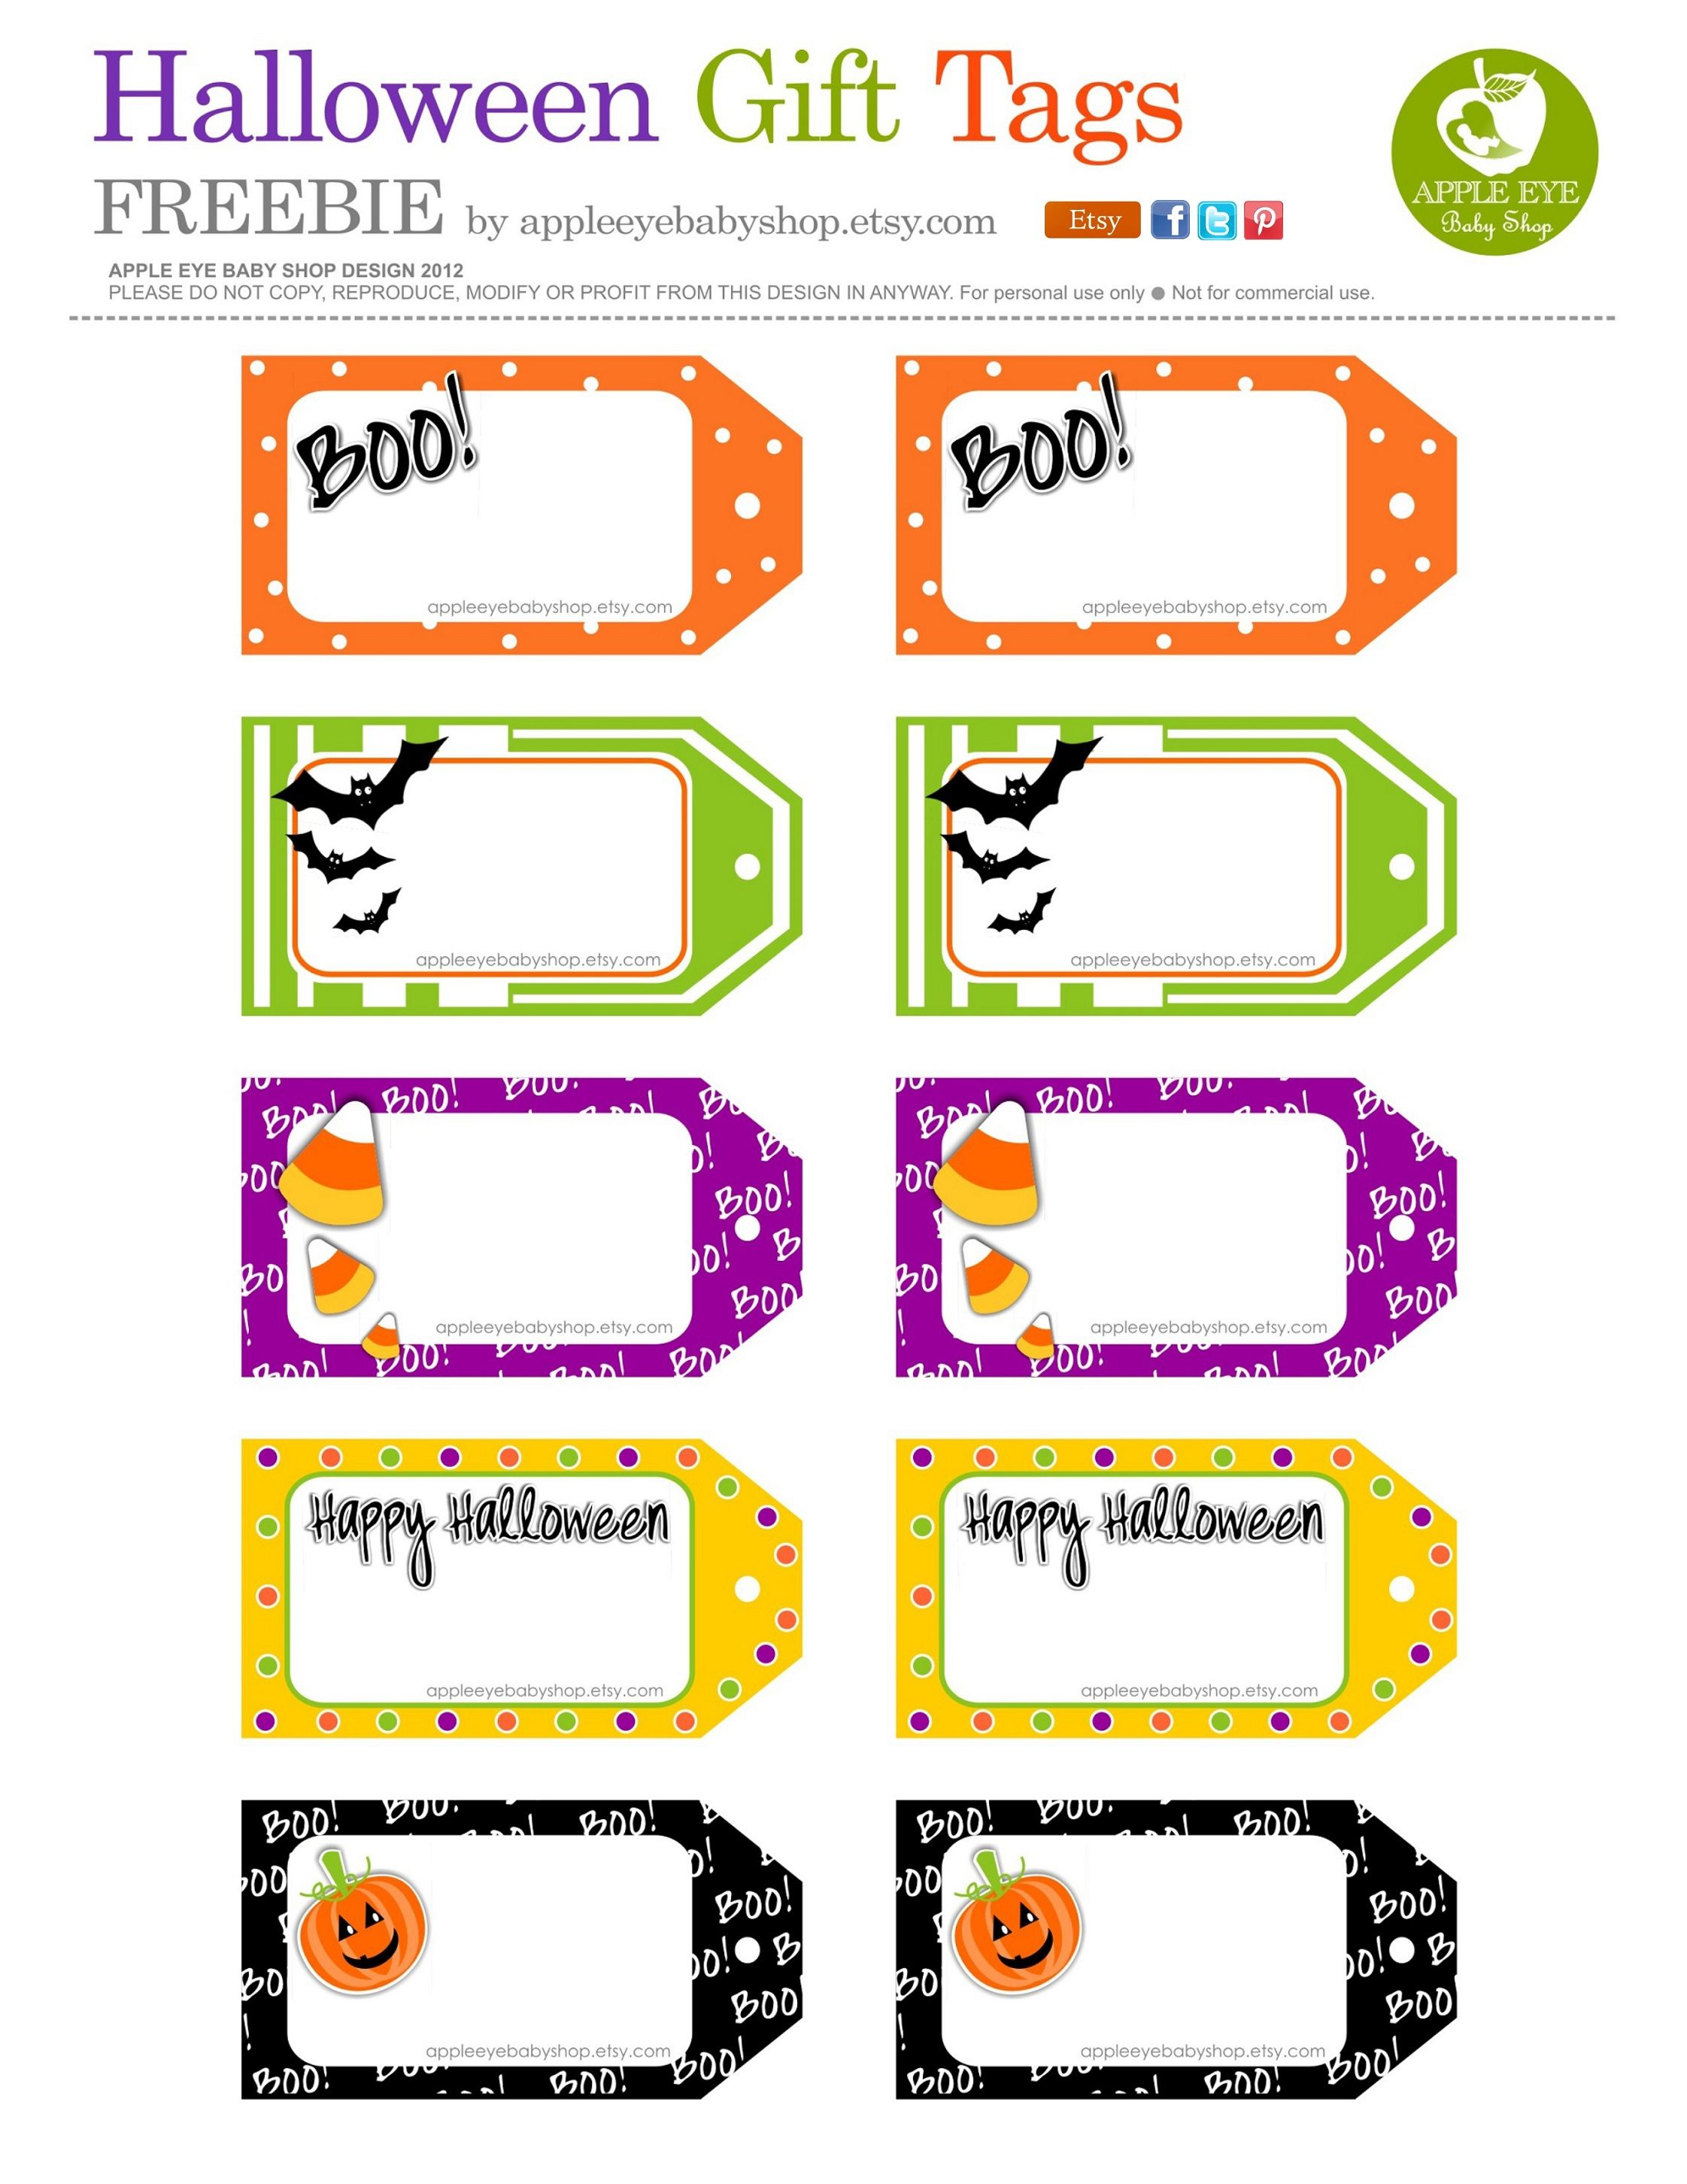 All sizes | FREE Printable | Halloween Gift Tags By Apple Eye Baby Shop | Flickr - Photo Sharing!  sc 1 st  Pinterest & All sizes | FREE Printable | Halloween Gift Tags By Apple Eye Baby ...